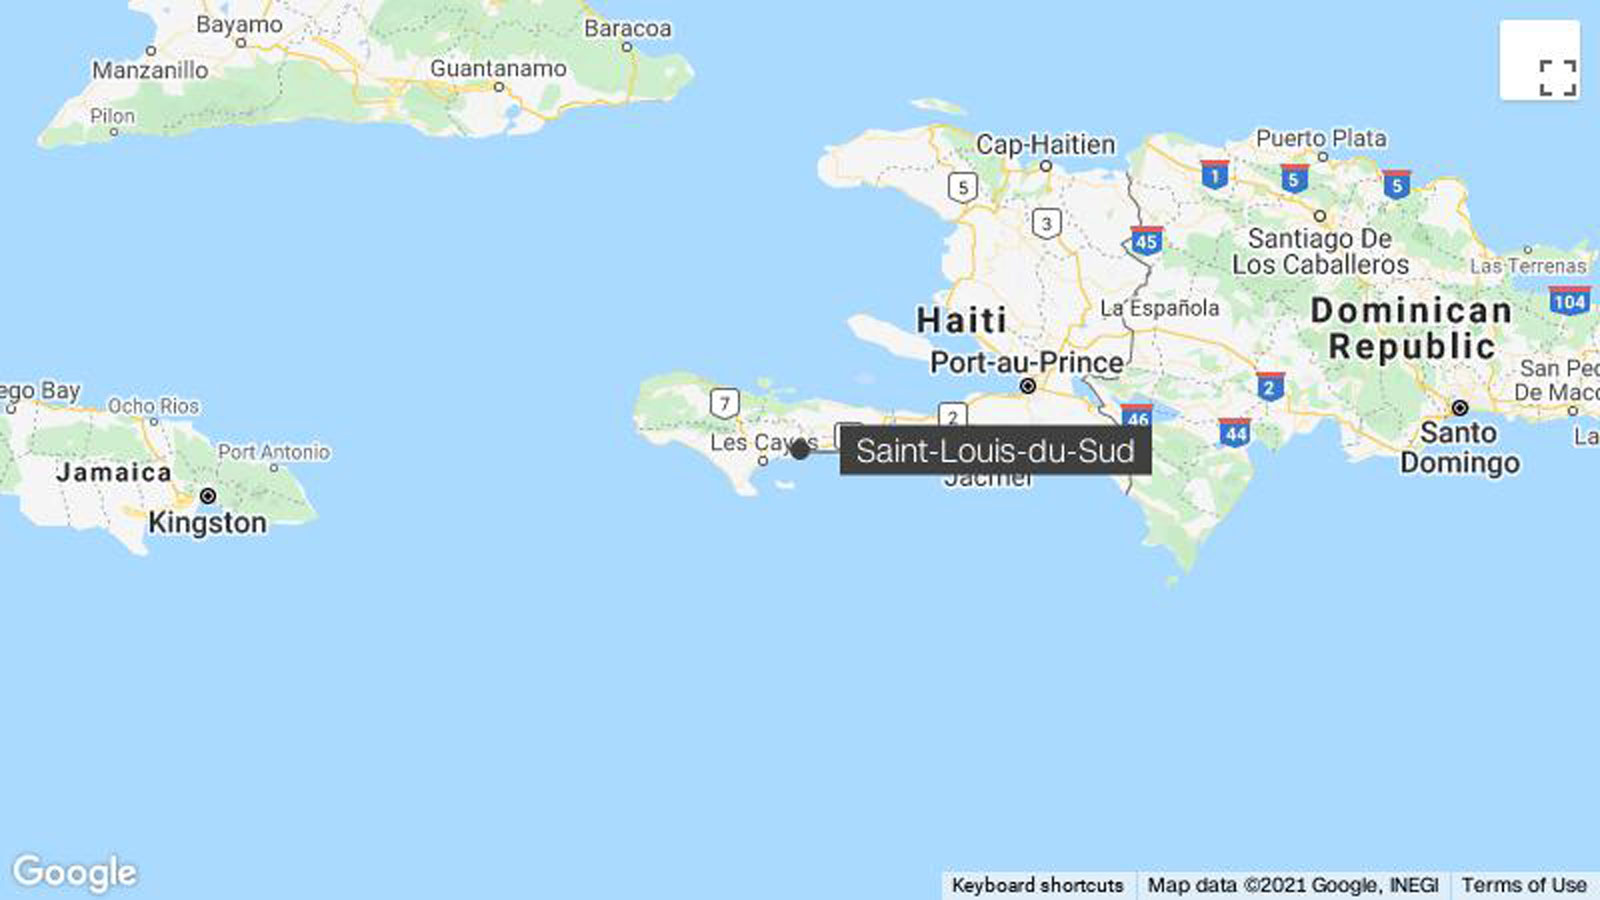 The earthquake was about 12 kilometers (7.5 miles) northeast of Saint-Louis-du-Sud and 13 kilometers deep, according to the USGS.